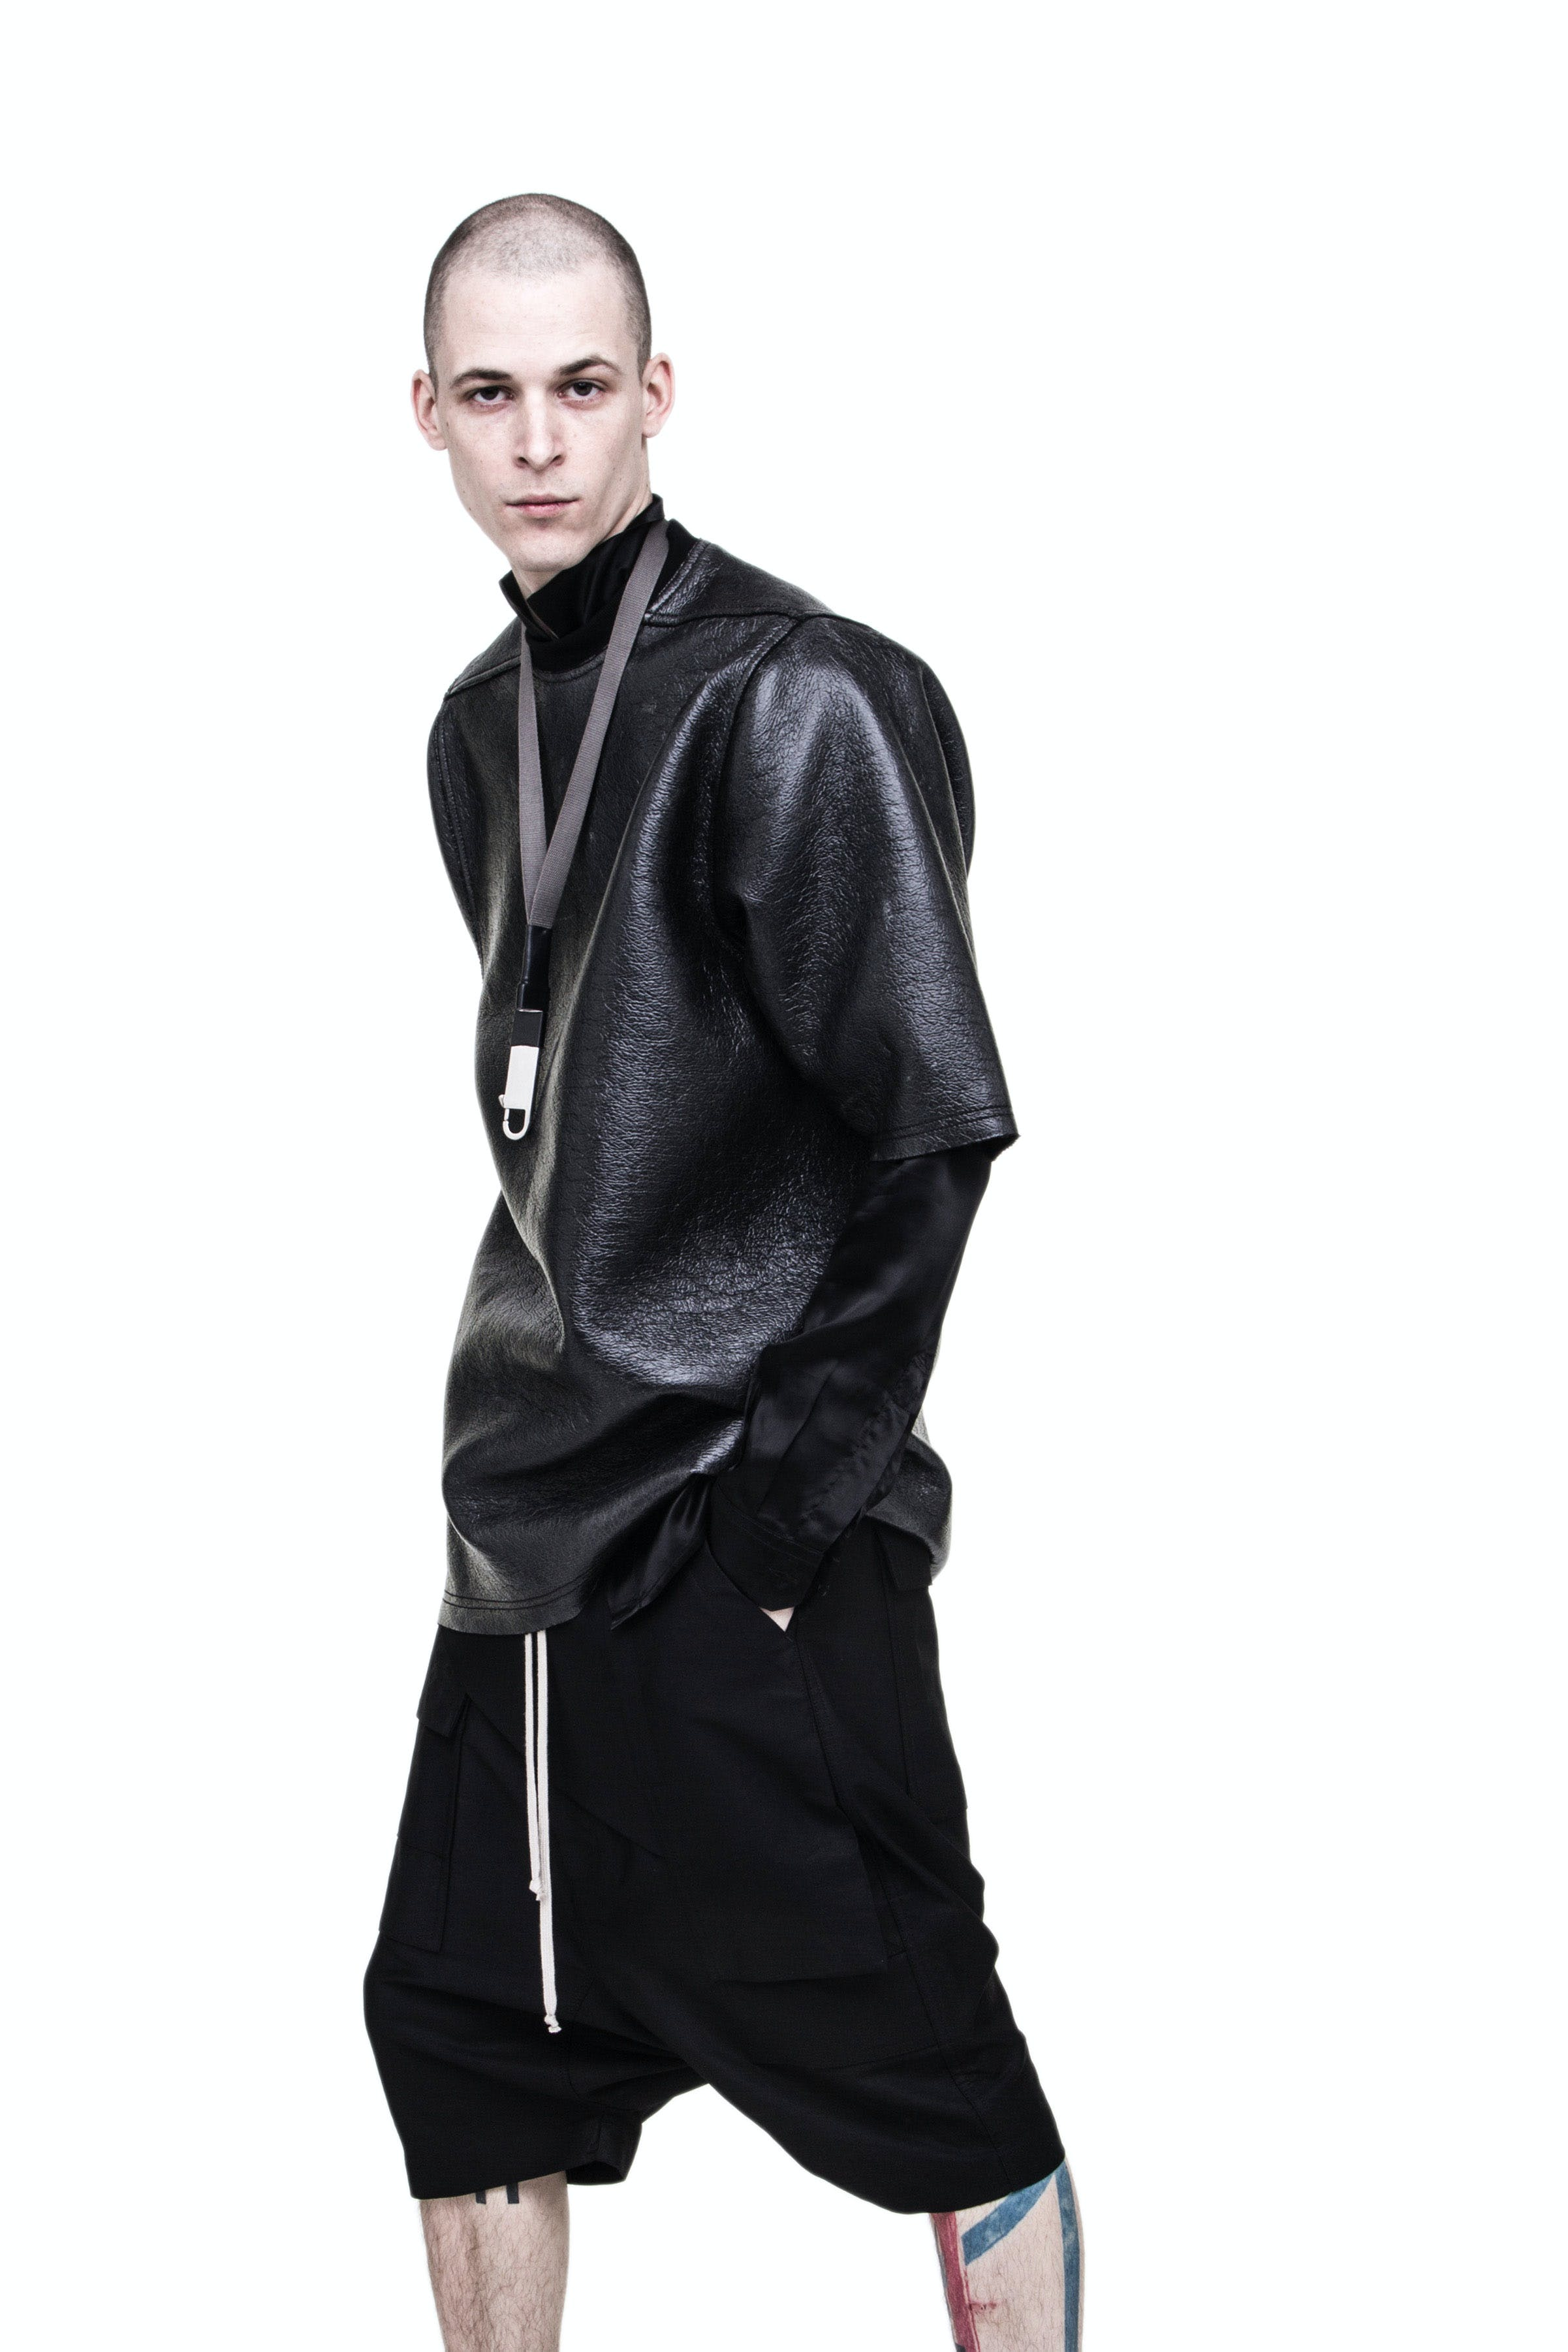 Rick Owens Campaign Oversized Leather T Shirt in Black Memphis Pods in Black Medium Neck Hook Key Chain Mens SS19 Babel